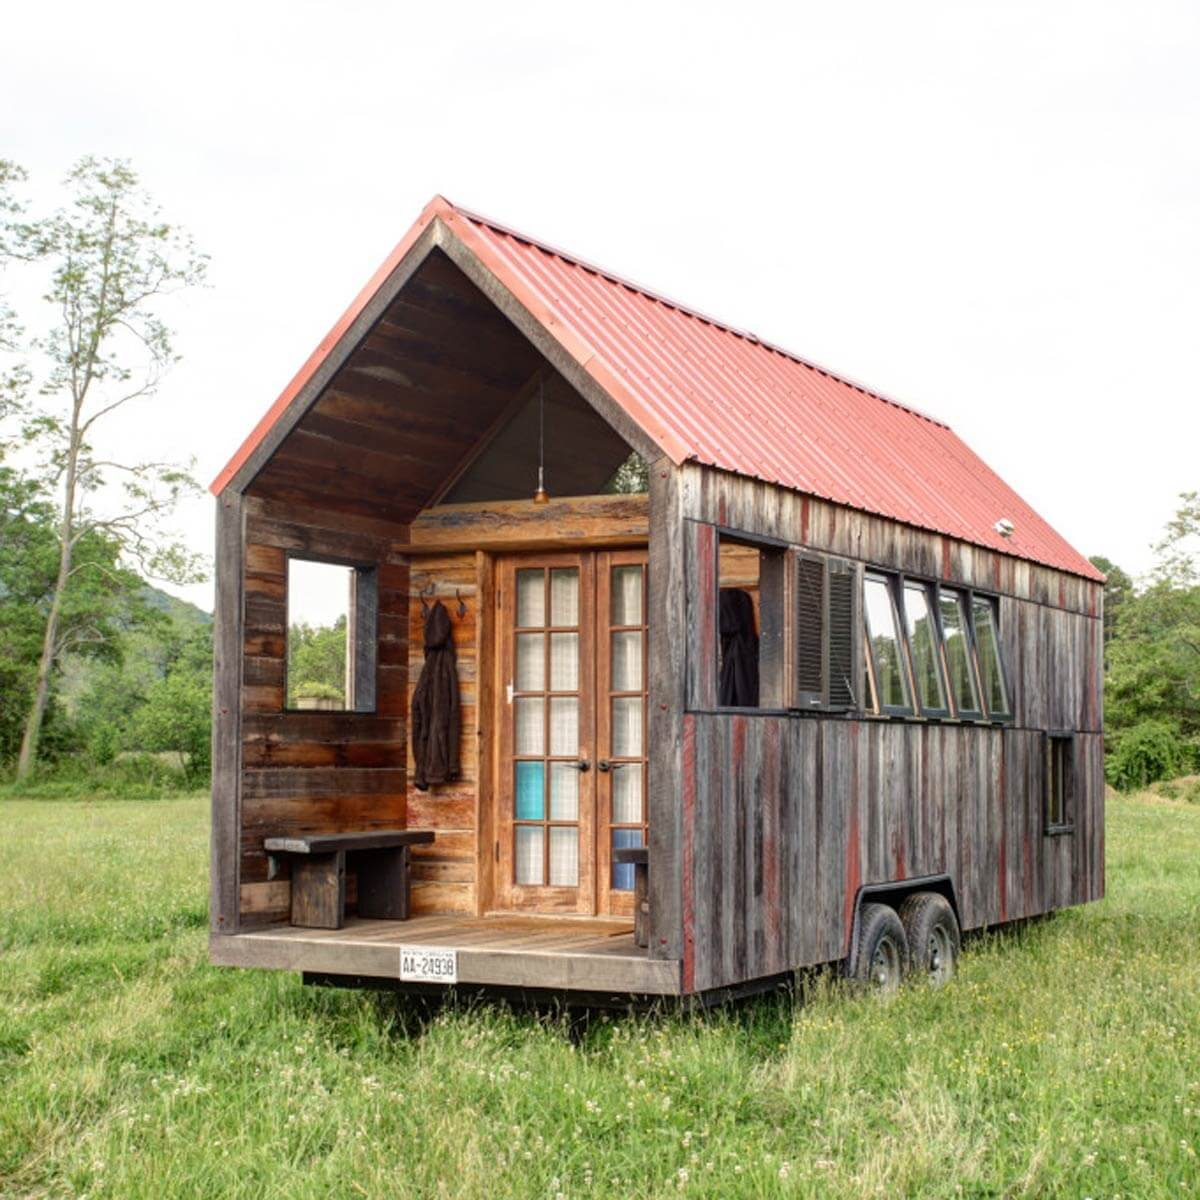 25 Tiny Homes Built From Recycled Material The Family Handyman